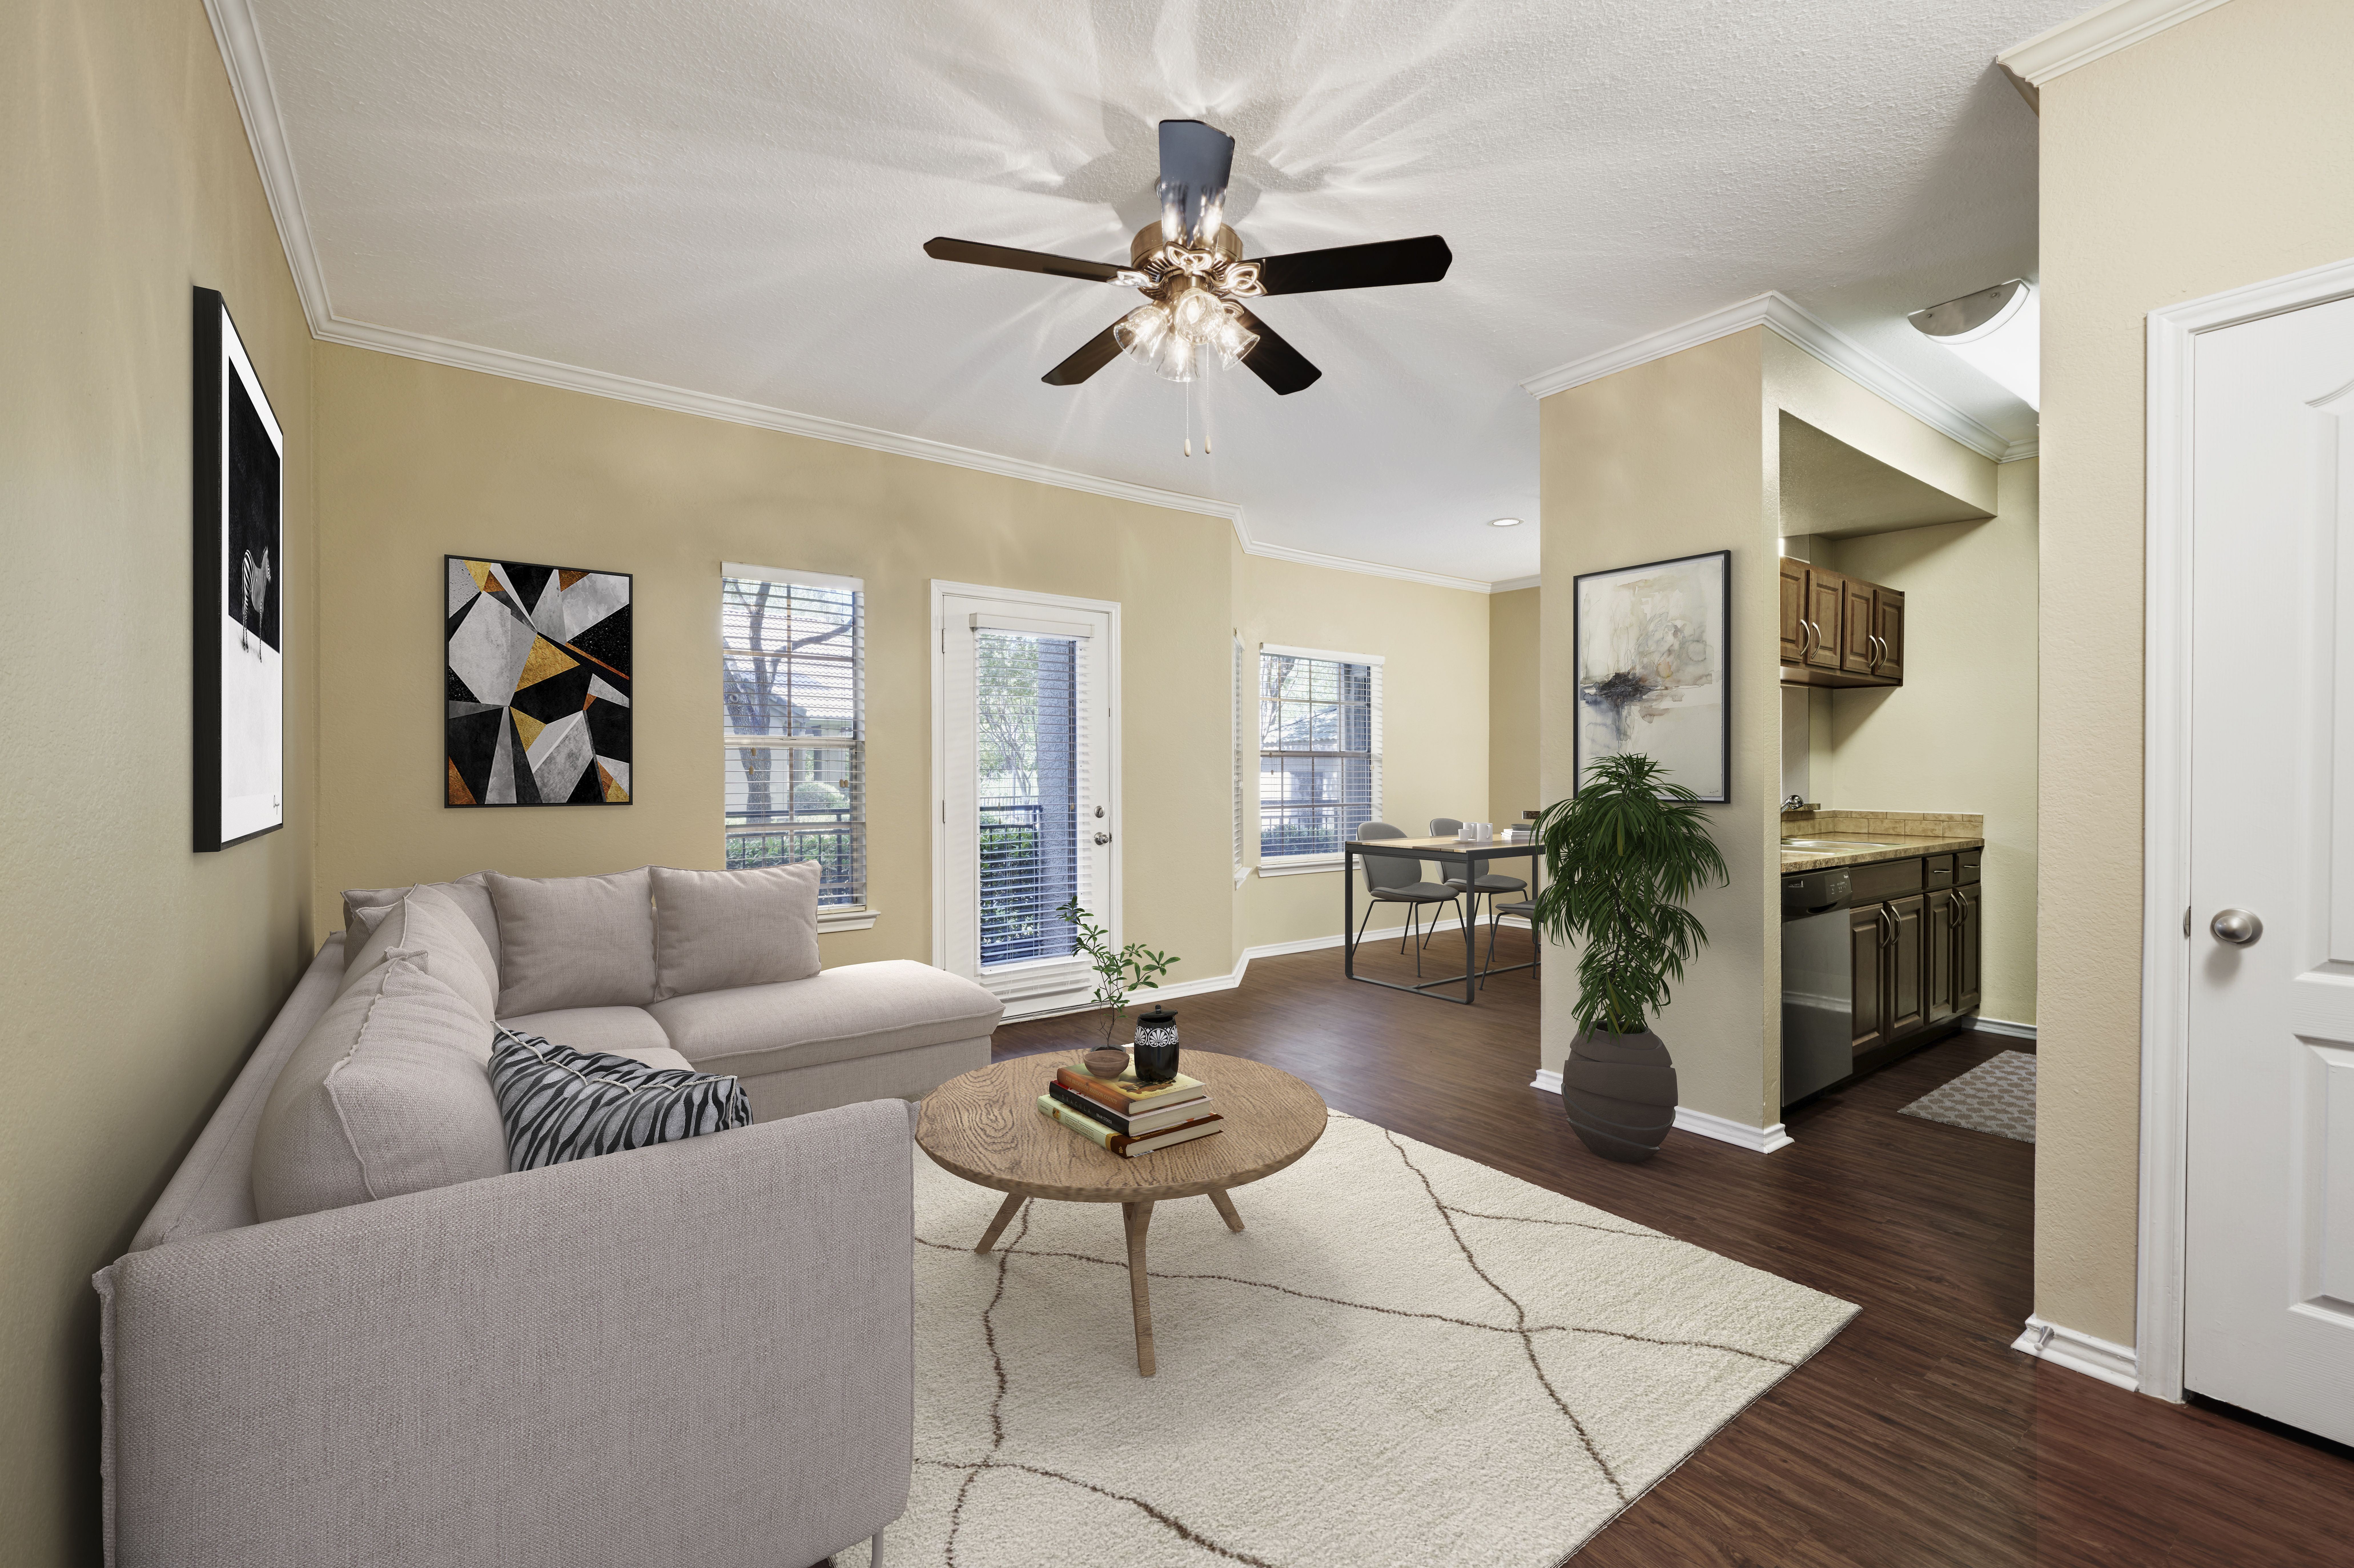 26 Dreamy One Bedroom Apartments Plano Tx Sample The Apartments Will Often Call To Check The Lette One Bedroom Apartment Bedroom Apartment Apartments For Rent